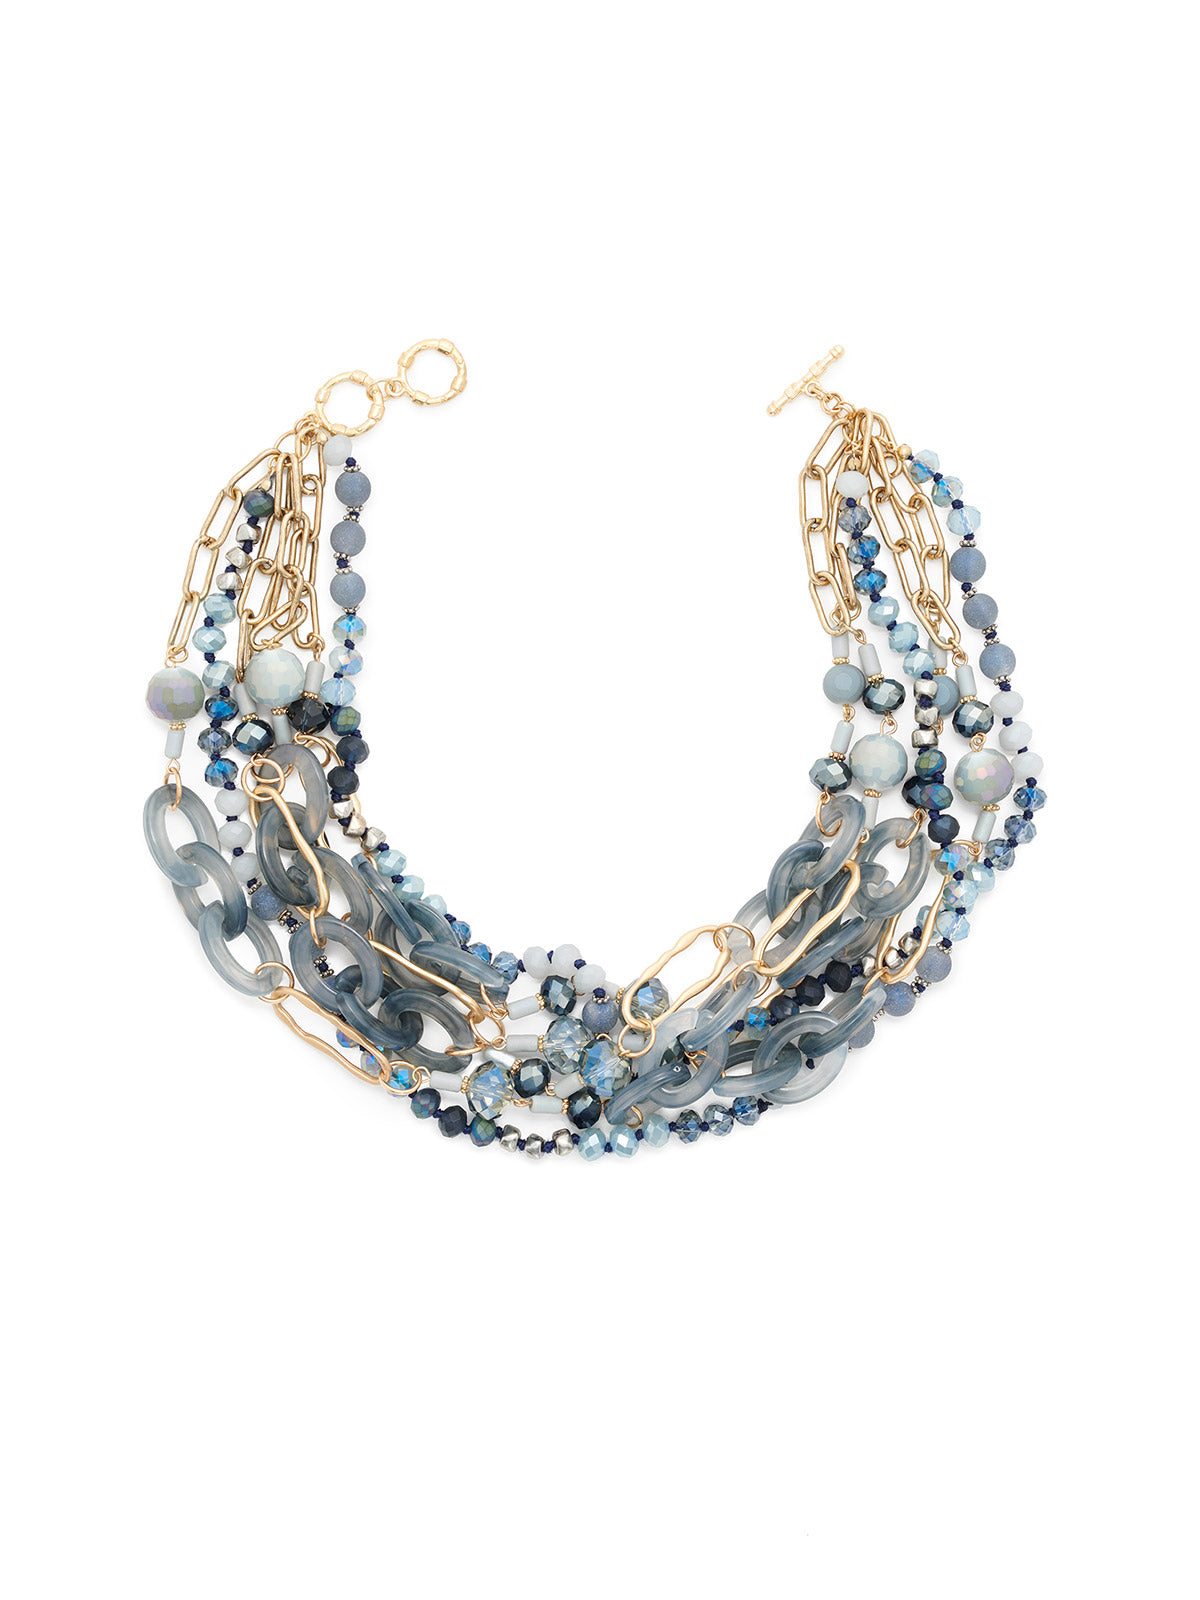 Multistrand Blue Crystal and Gold Link Necklace